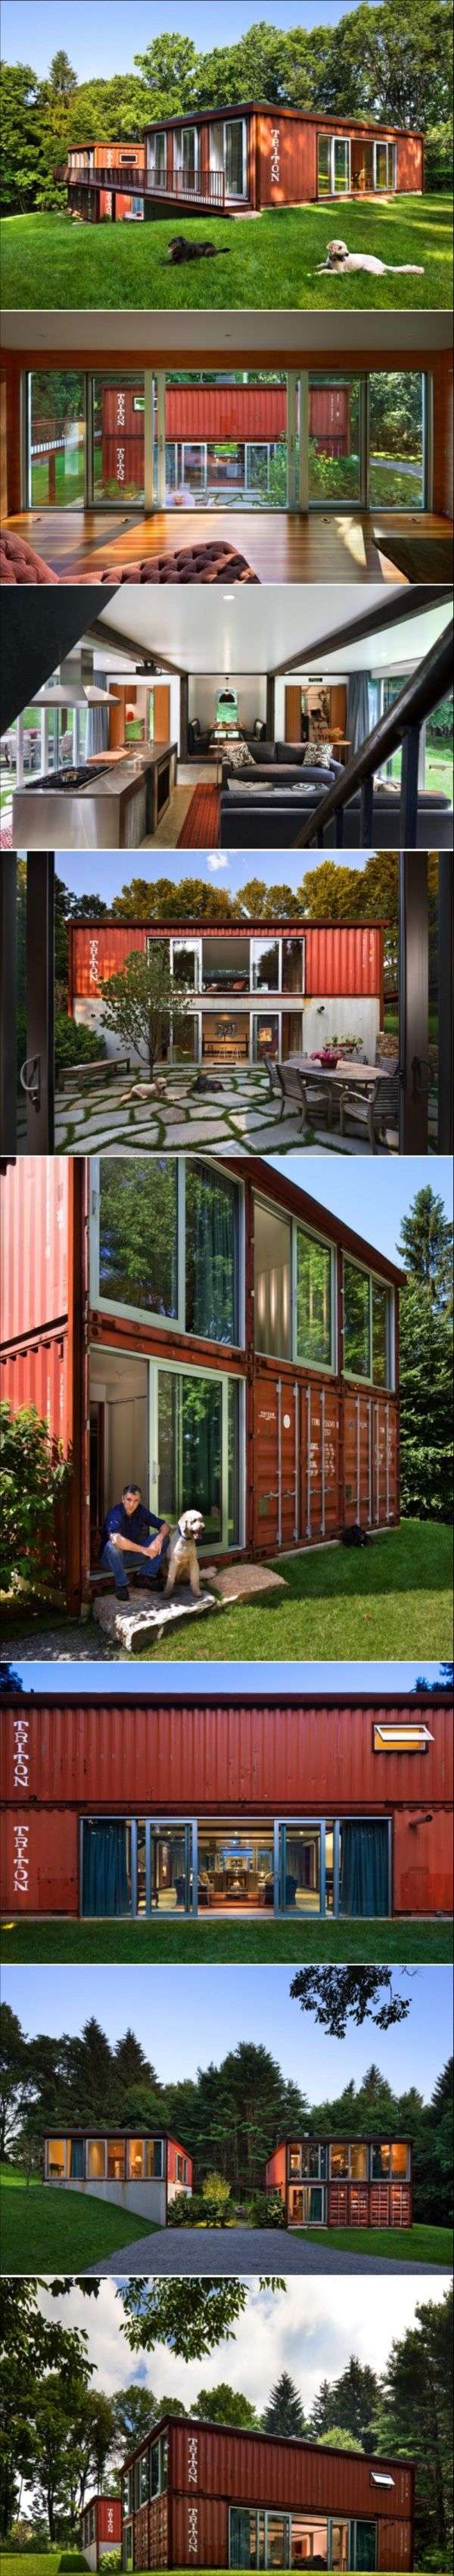 Adam kalkin 39 s old lady house is a modern shipping - Kalkin shipping container homes ...